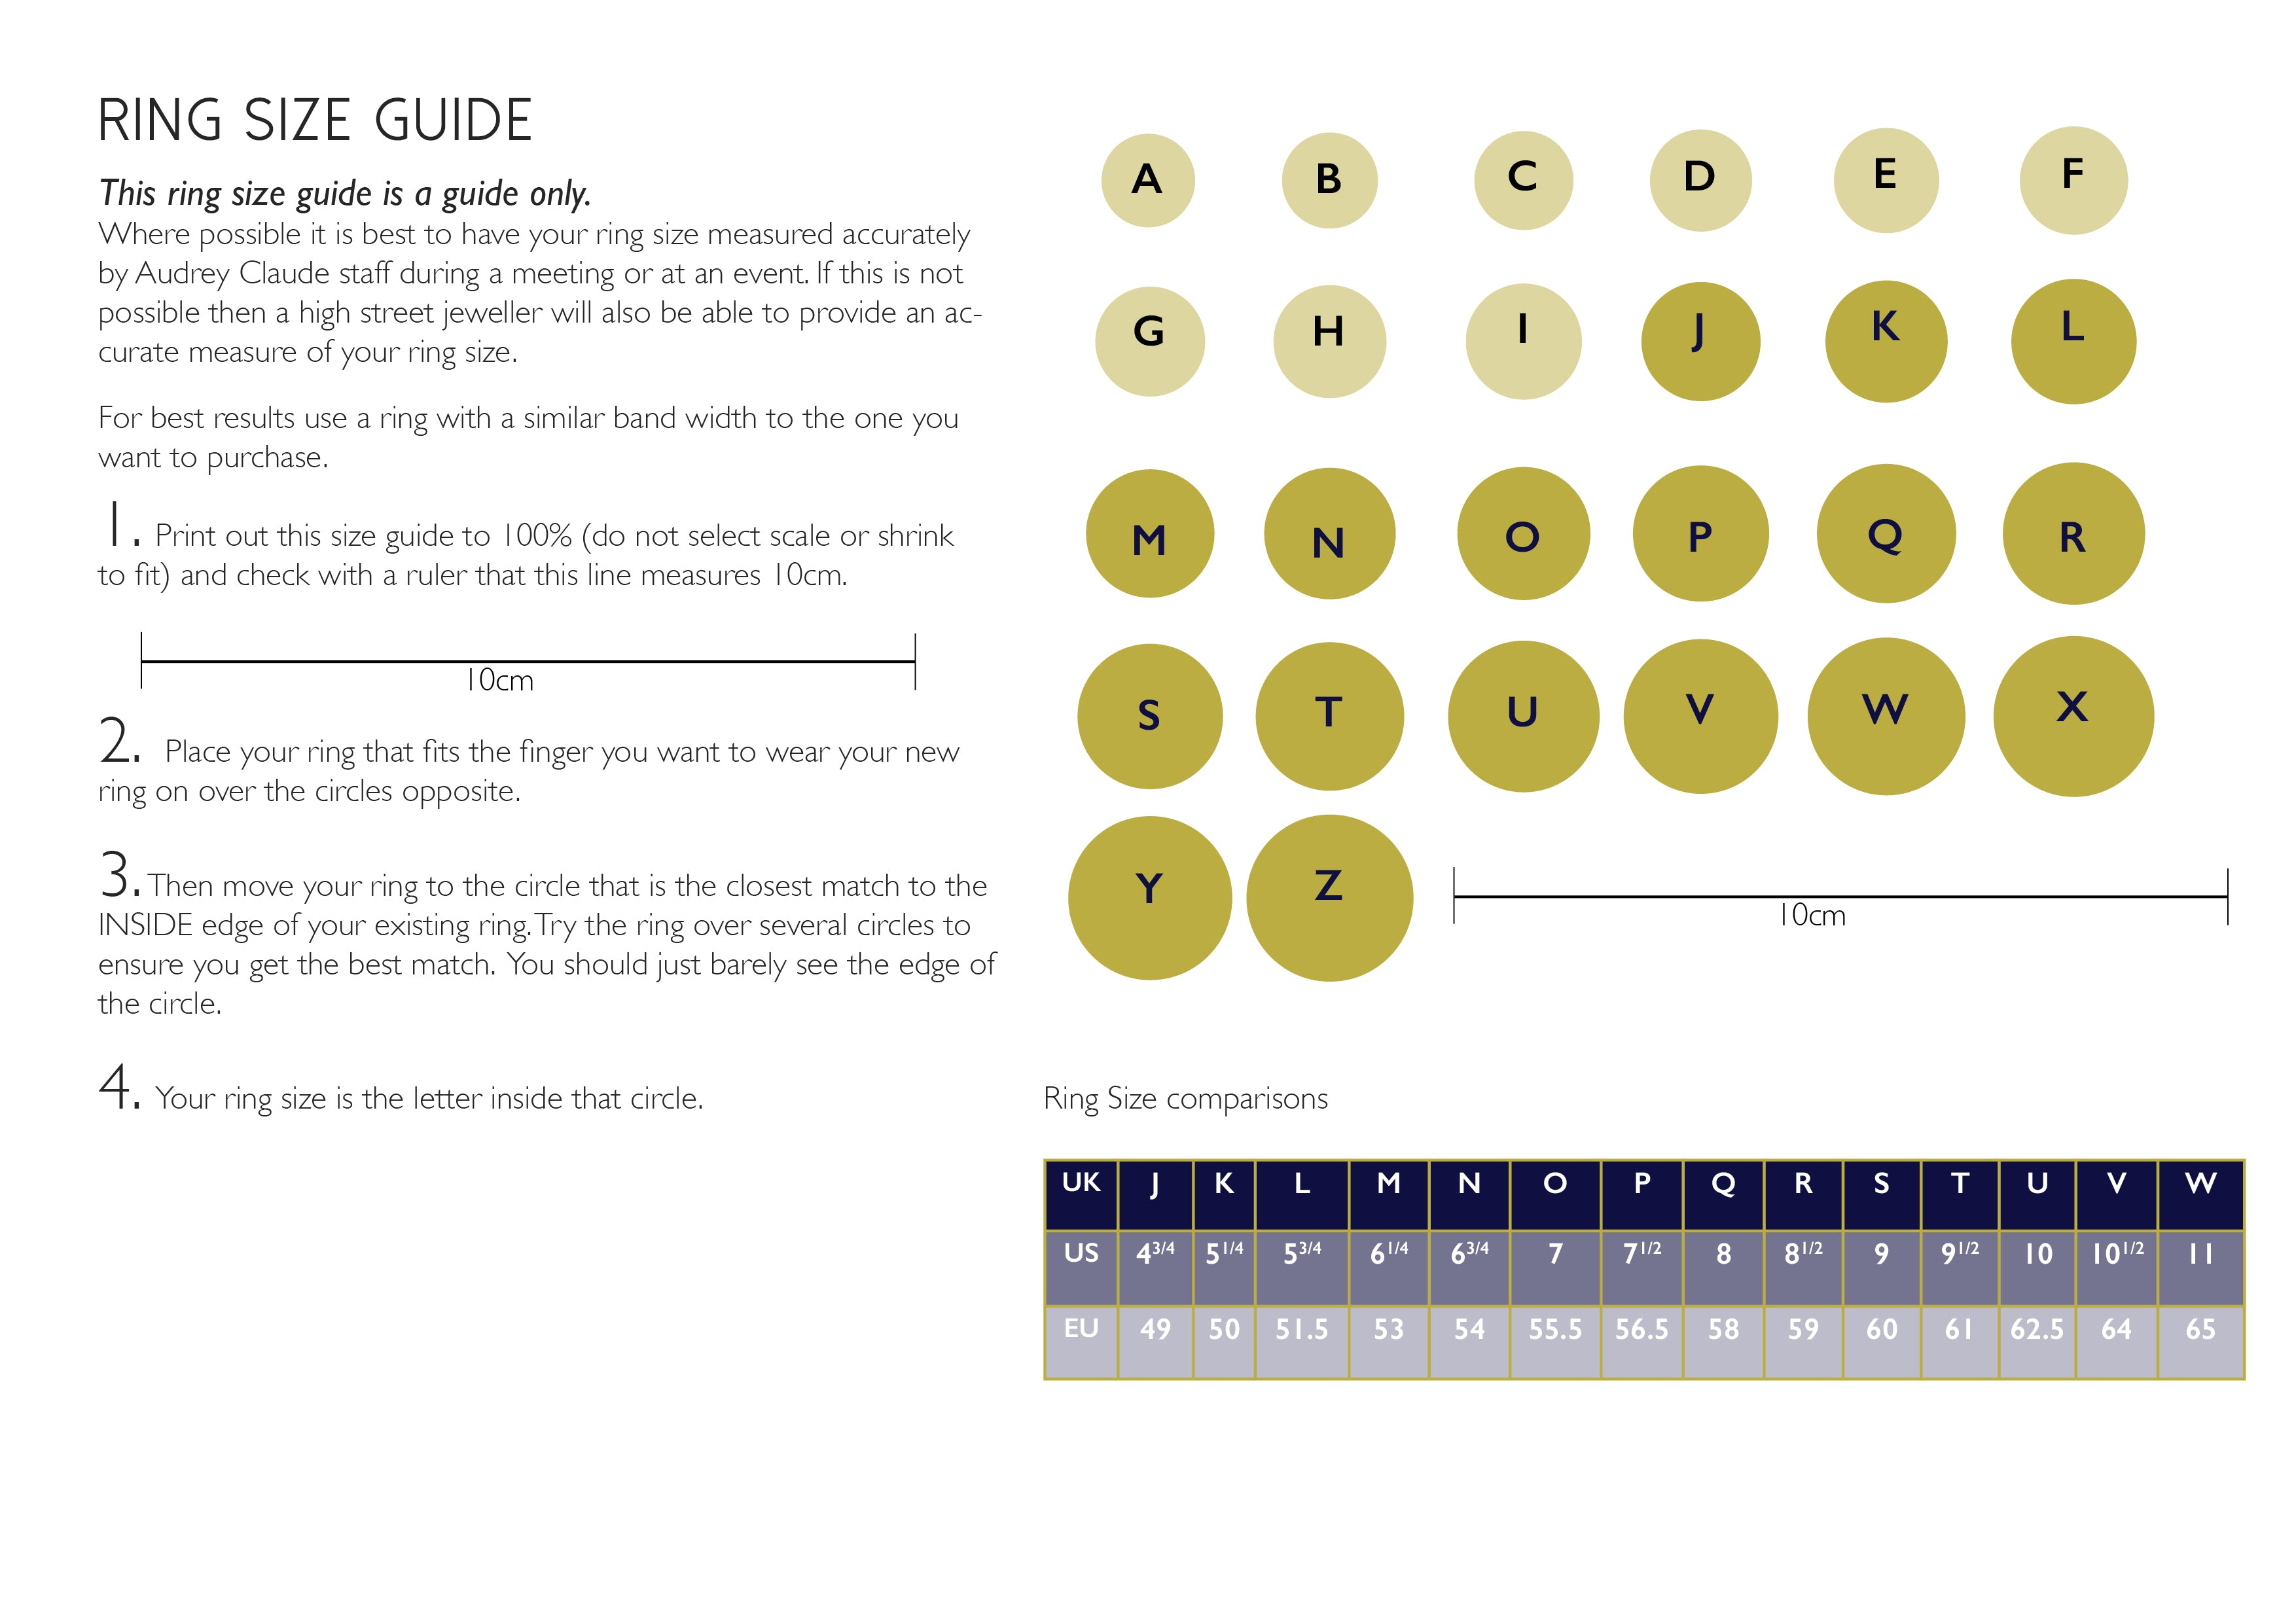 photo regarding Printable Ring Size Chart named Ring Dimensions - Audrey Claude Jewelry